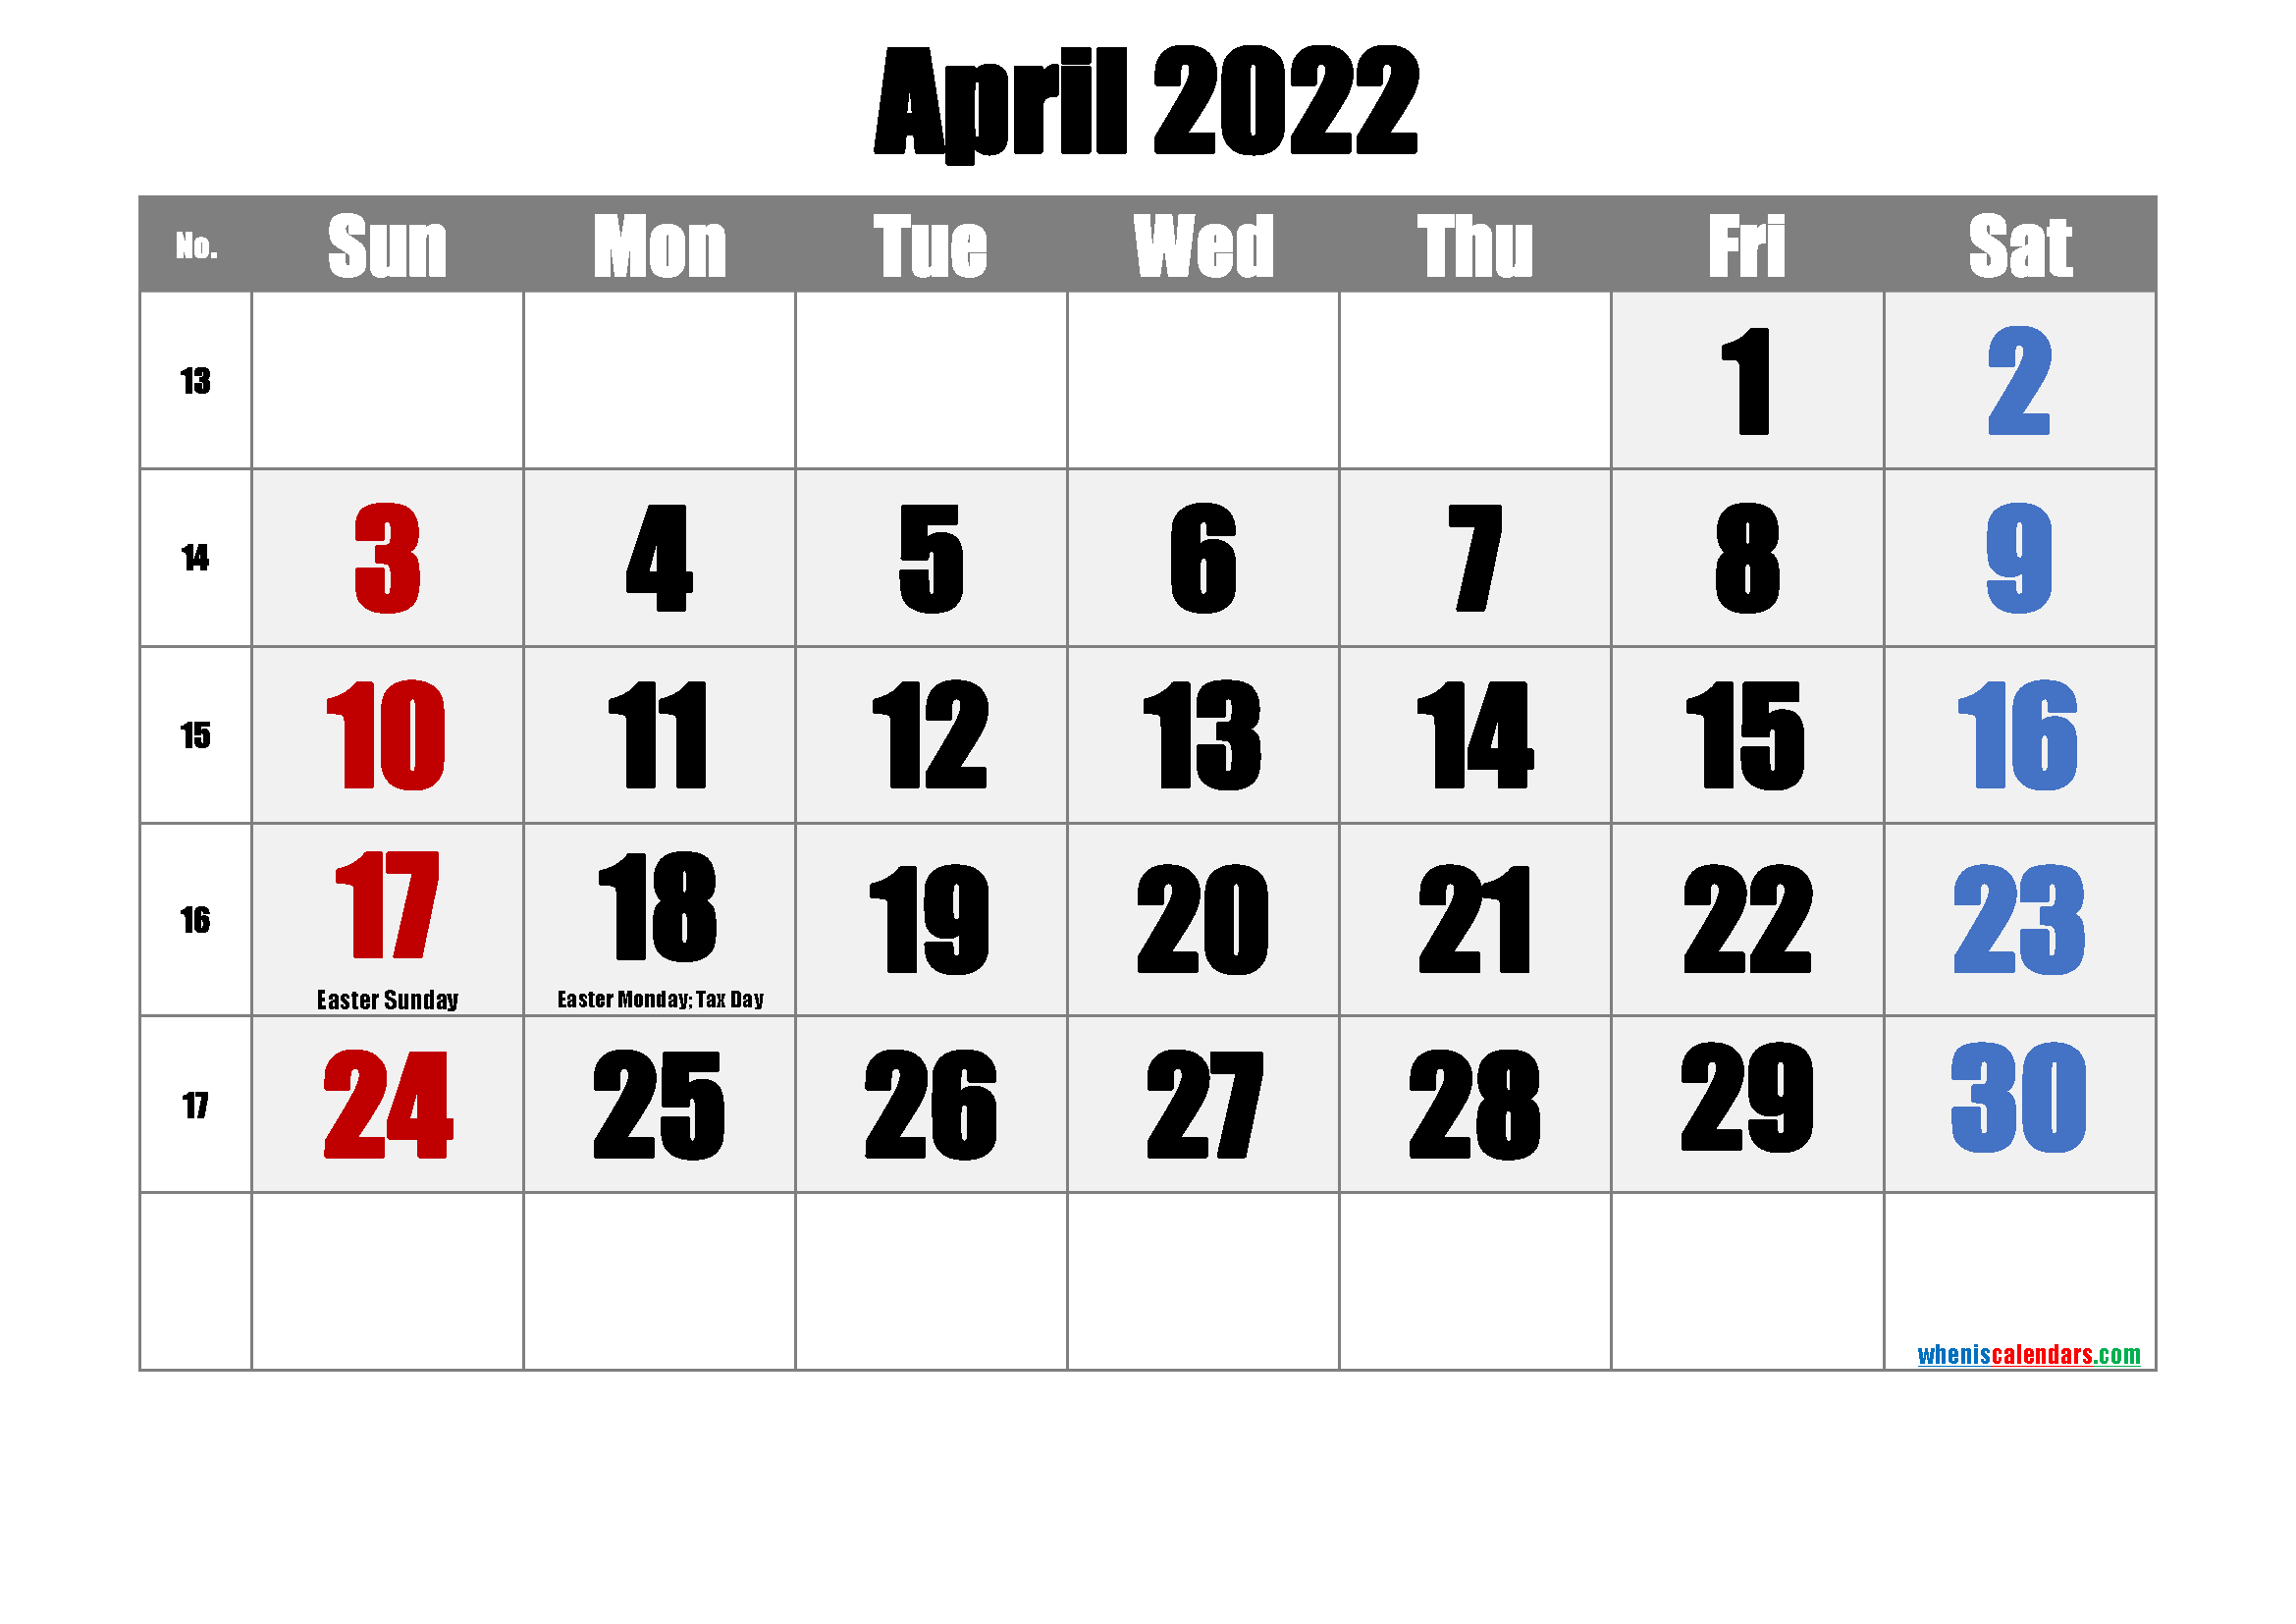 April 2022 Printable Calendar with Holidays